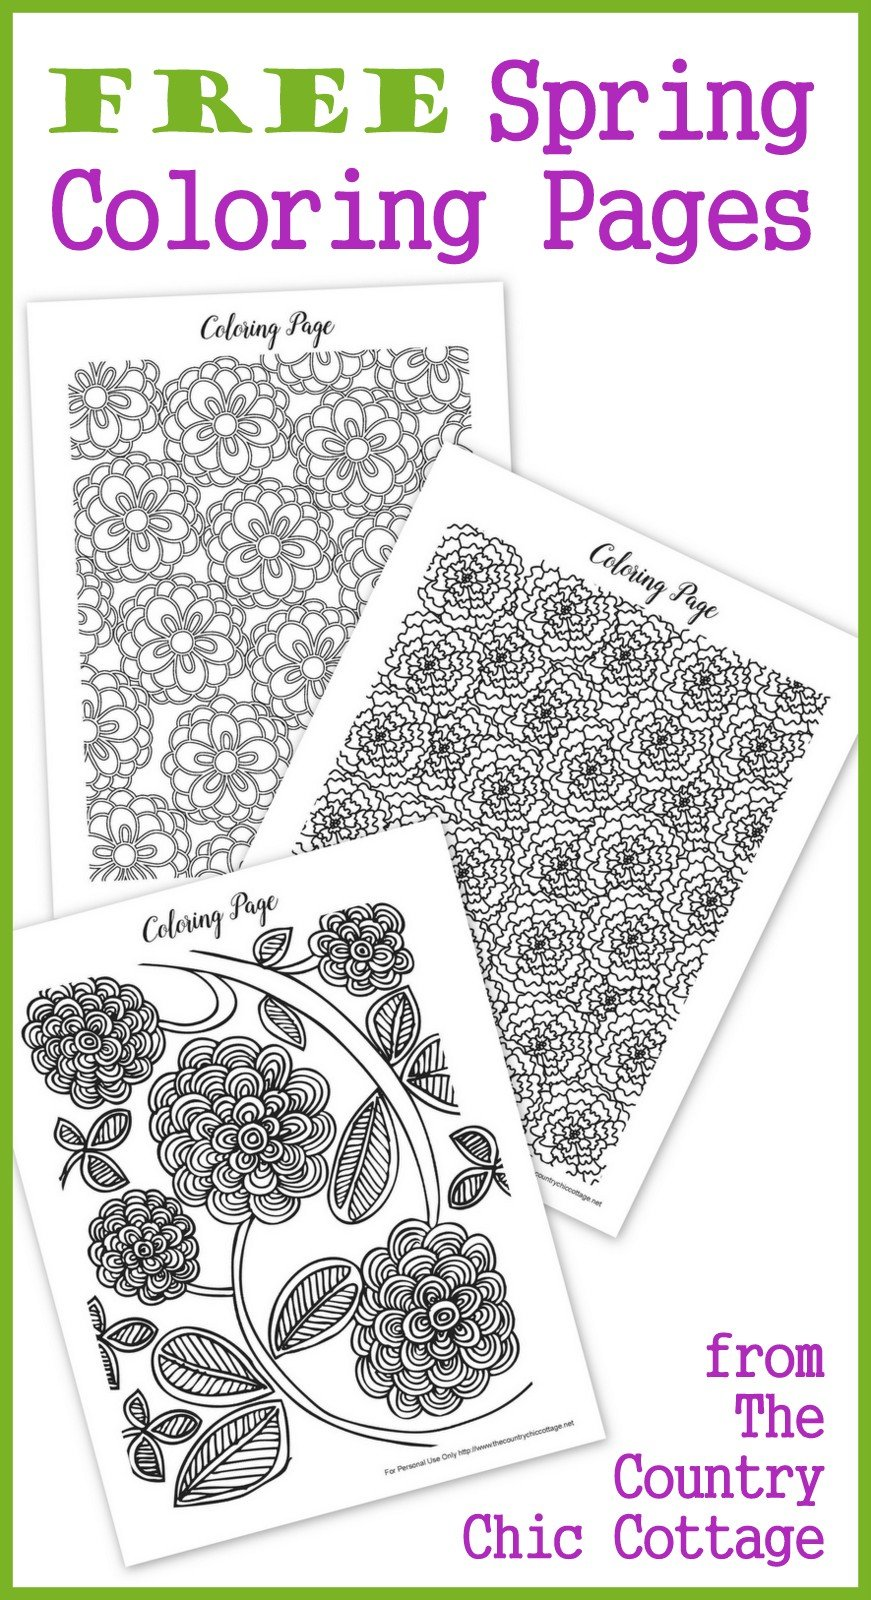 free spring coloring pages for adults - Download Coloring Pages For Adults